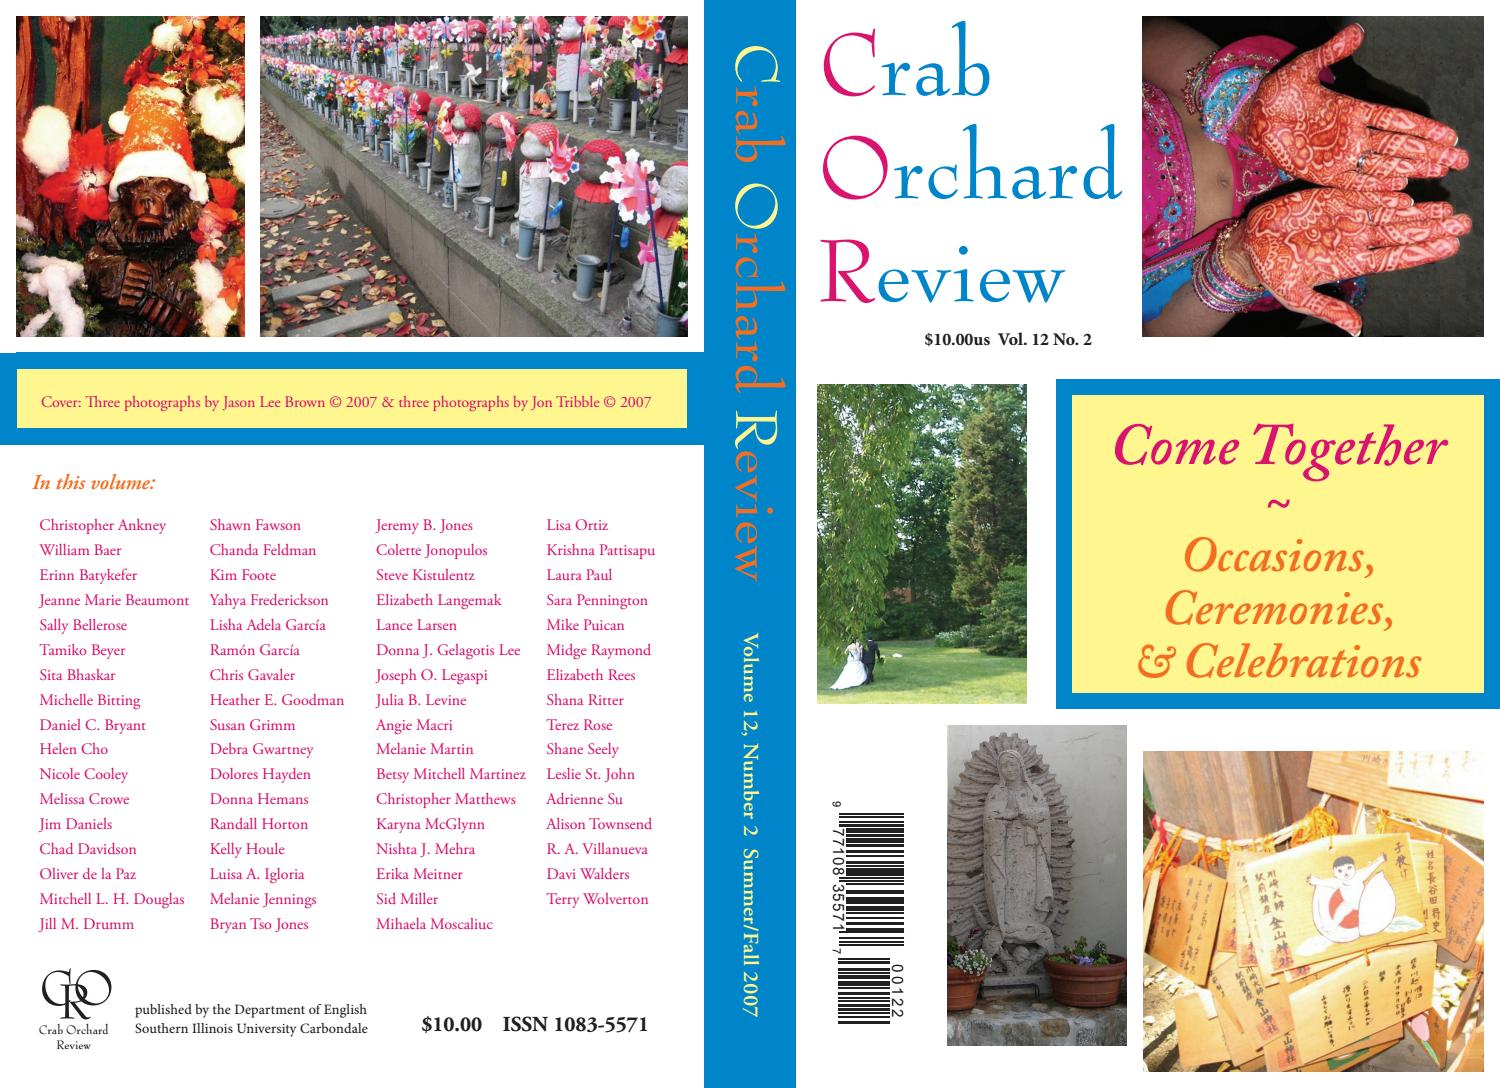 d598baff0 Crab Orchard Review Vol 12 No 2 S/F 2007 by Crab Orchard Review - issuu